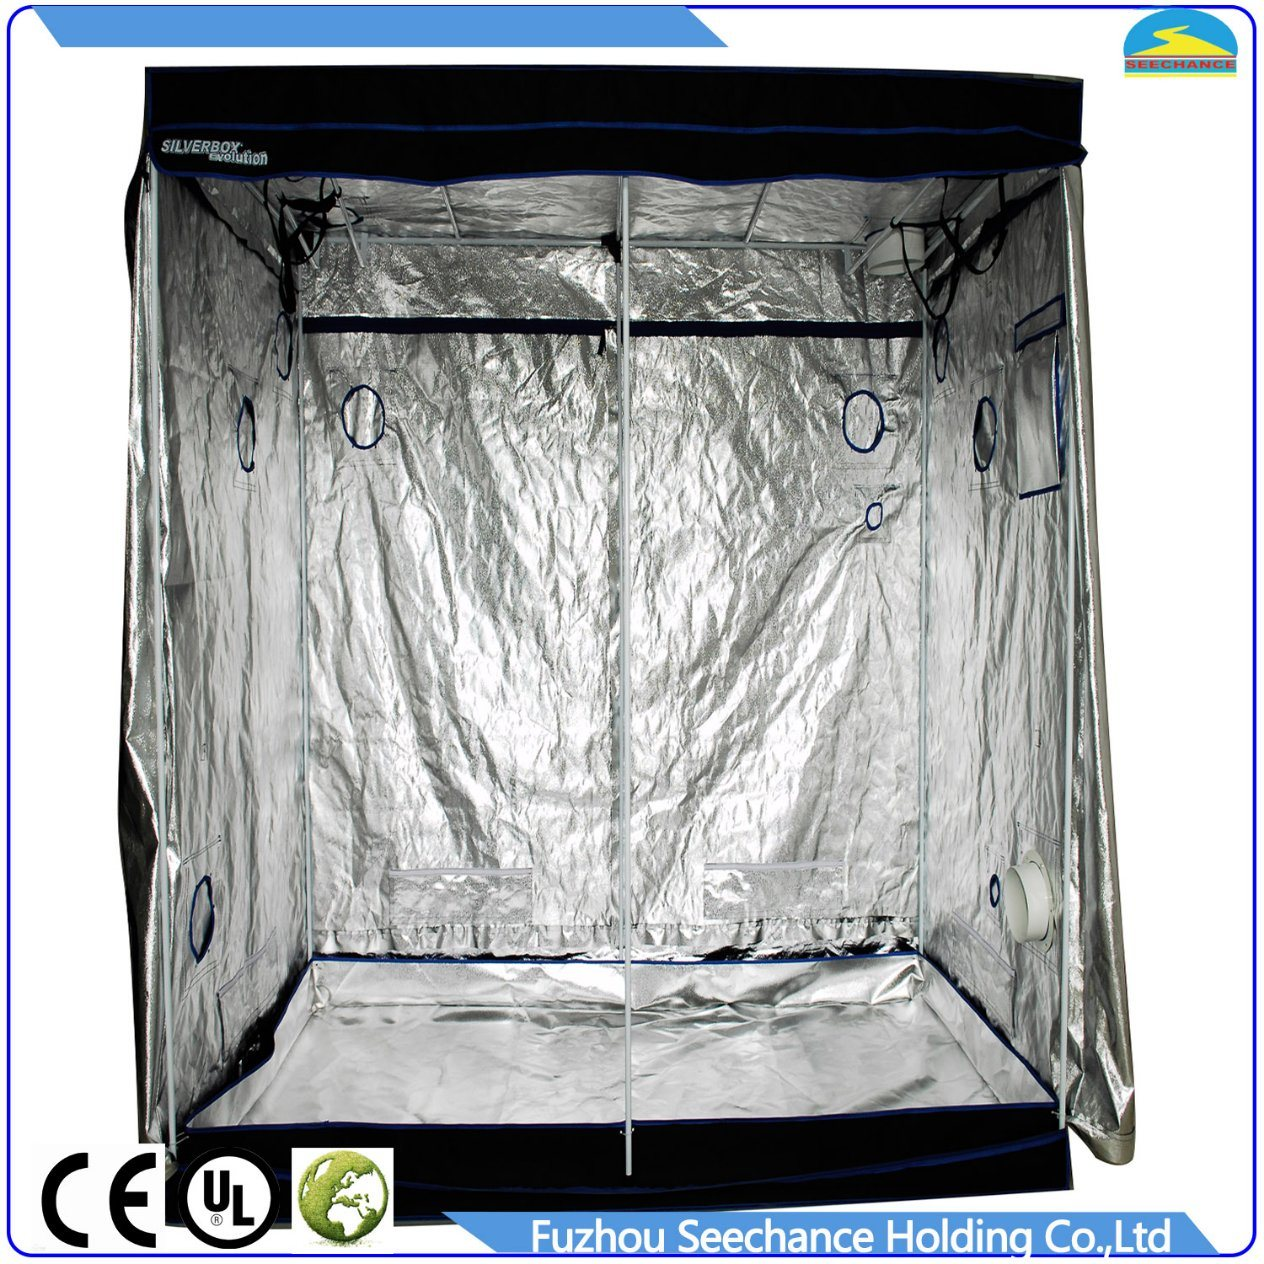 High Performance Grow Tent Special Dome Style Models 80*80*160cm